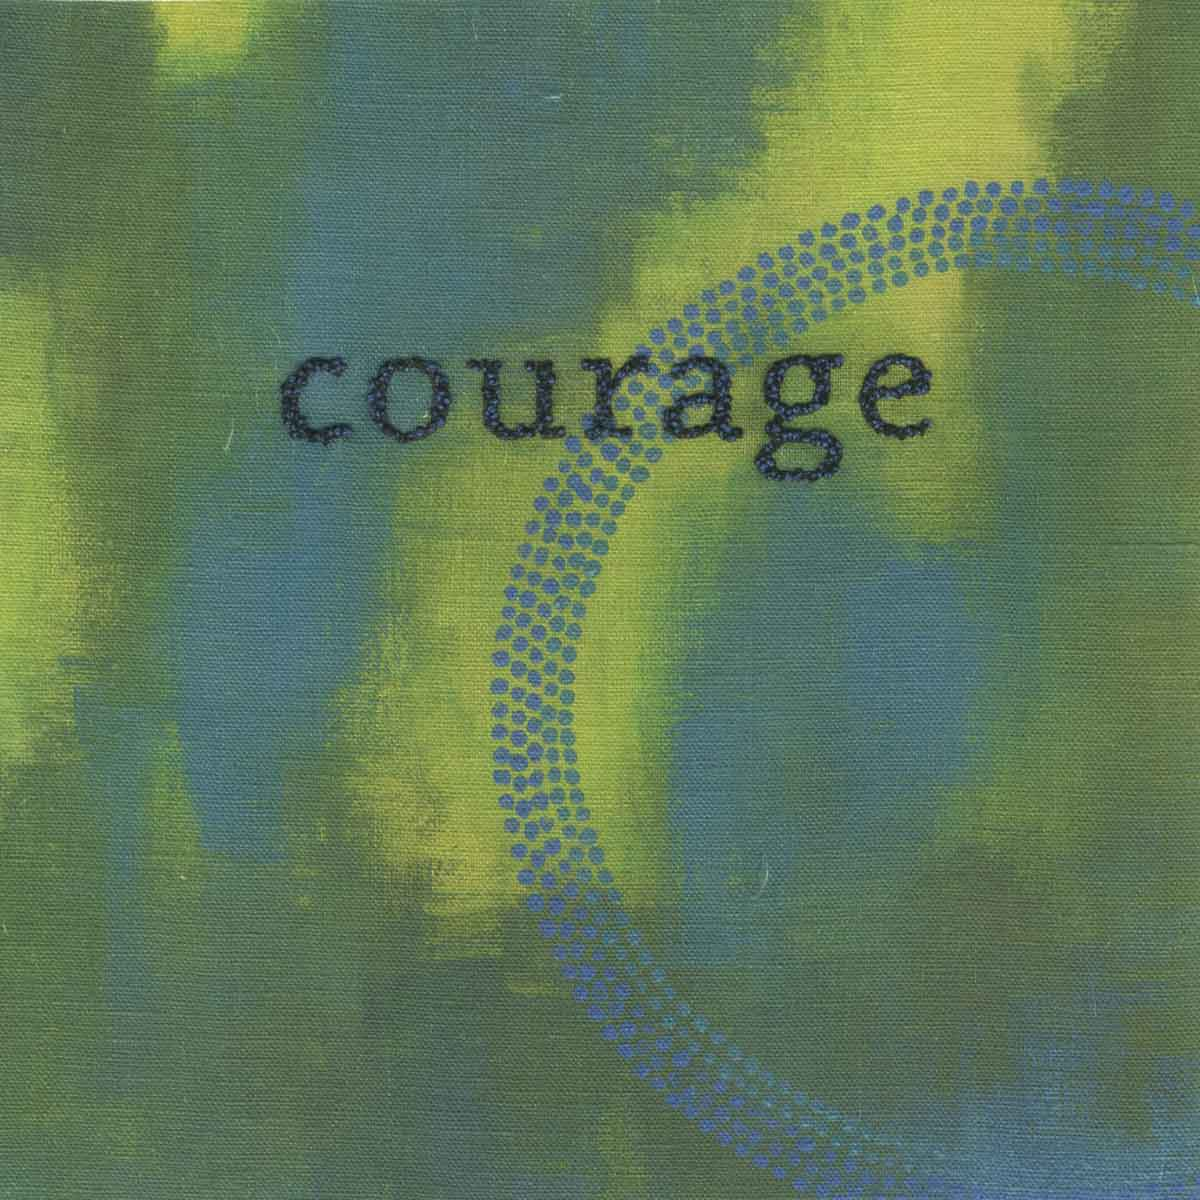 "courage (embroidery), 6"" x 6"" x ¾,"" Nan Genger, 2016"